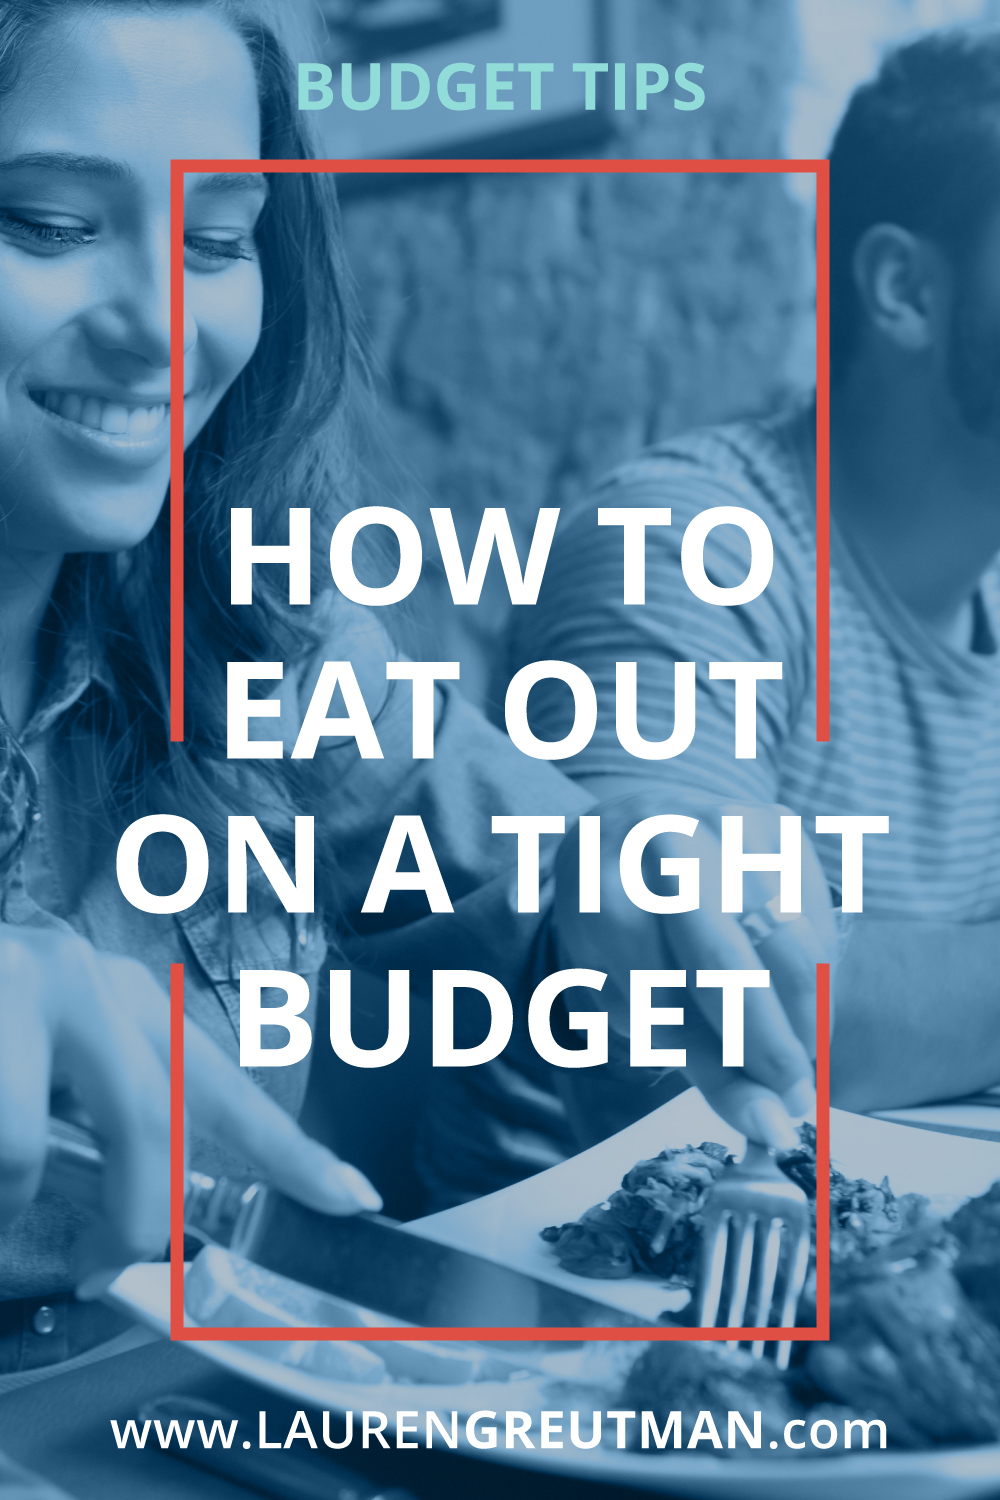 Just because your on a budget doesn't mean you can't eat out. Here are my favorite tips for *eating out on a budget* and how you too can fit it.